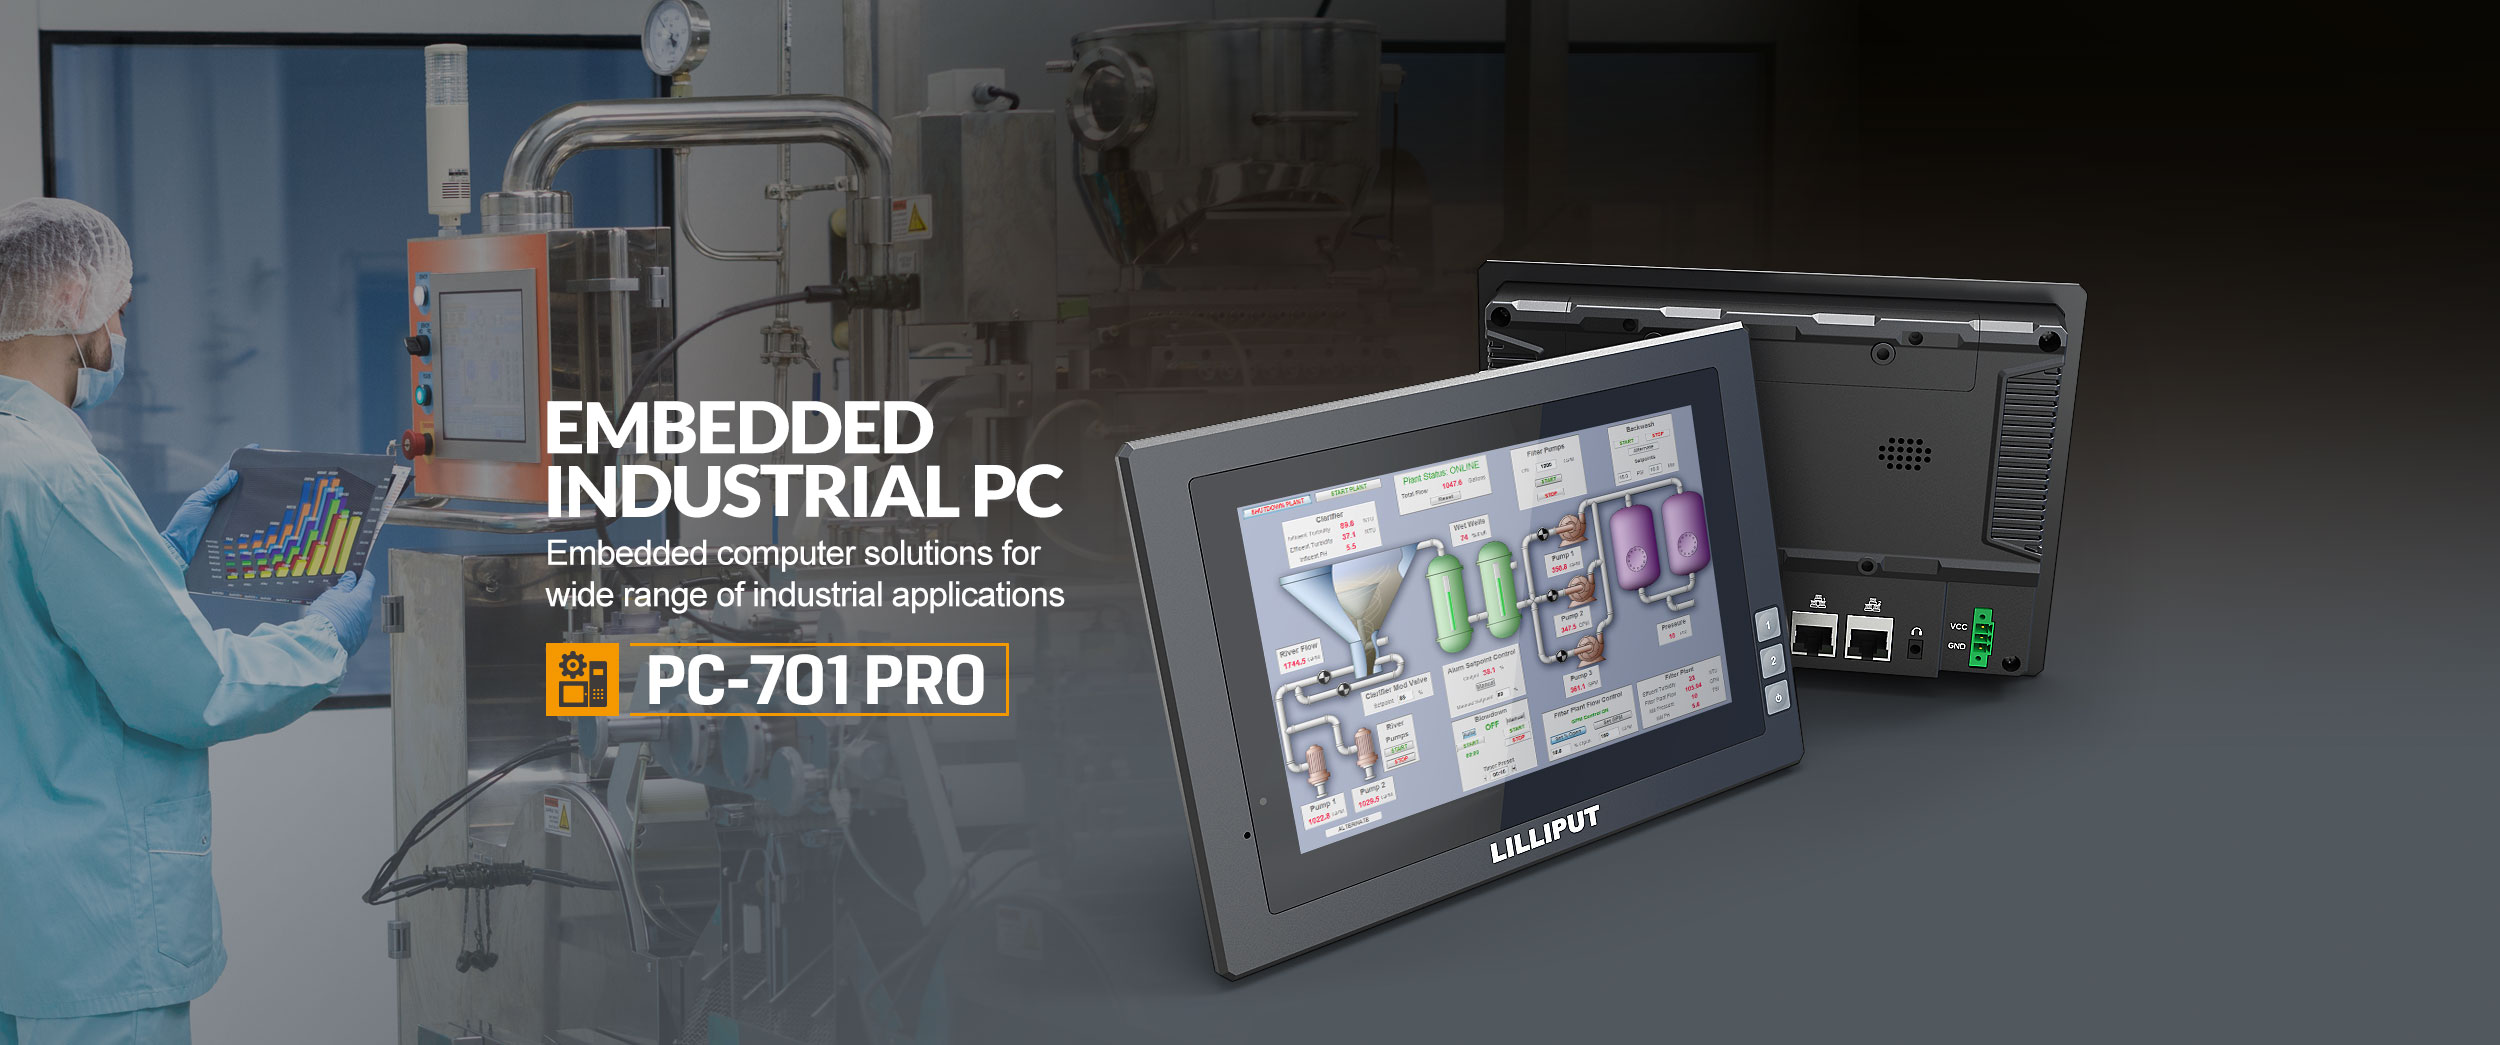 7 Inch Embedded Industrial PANEL PC